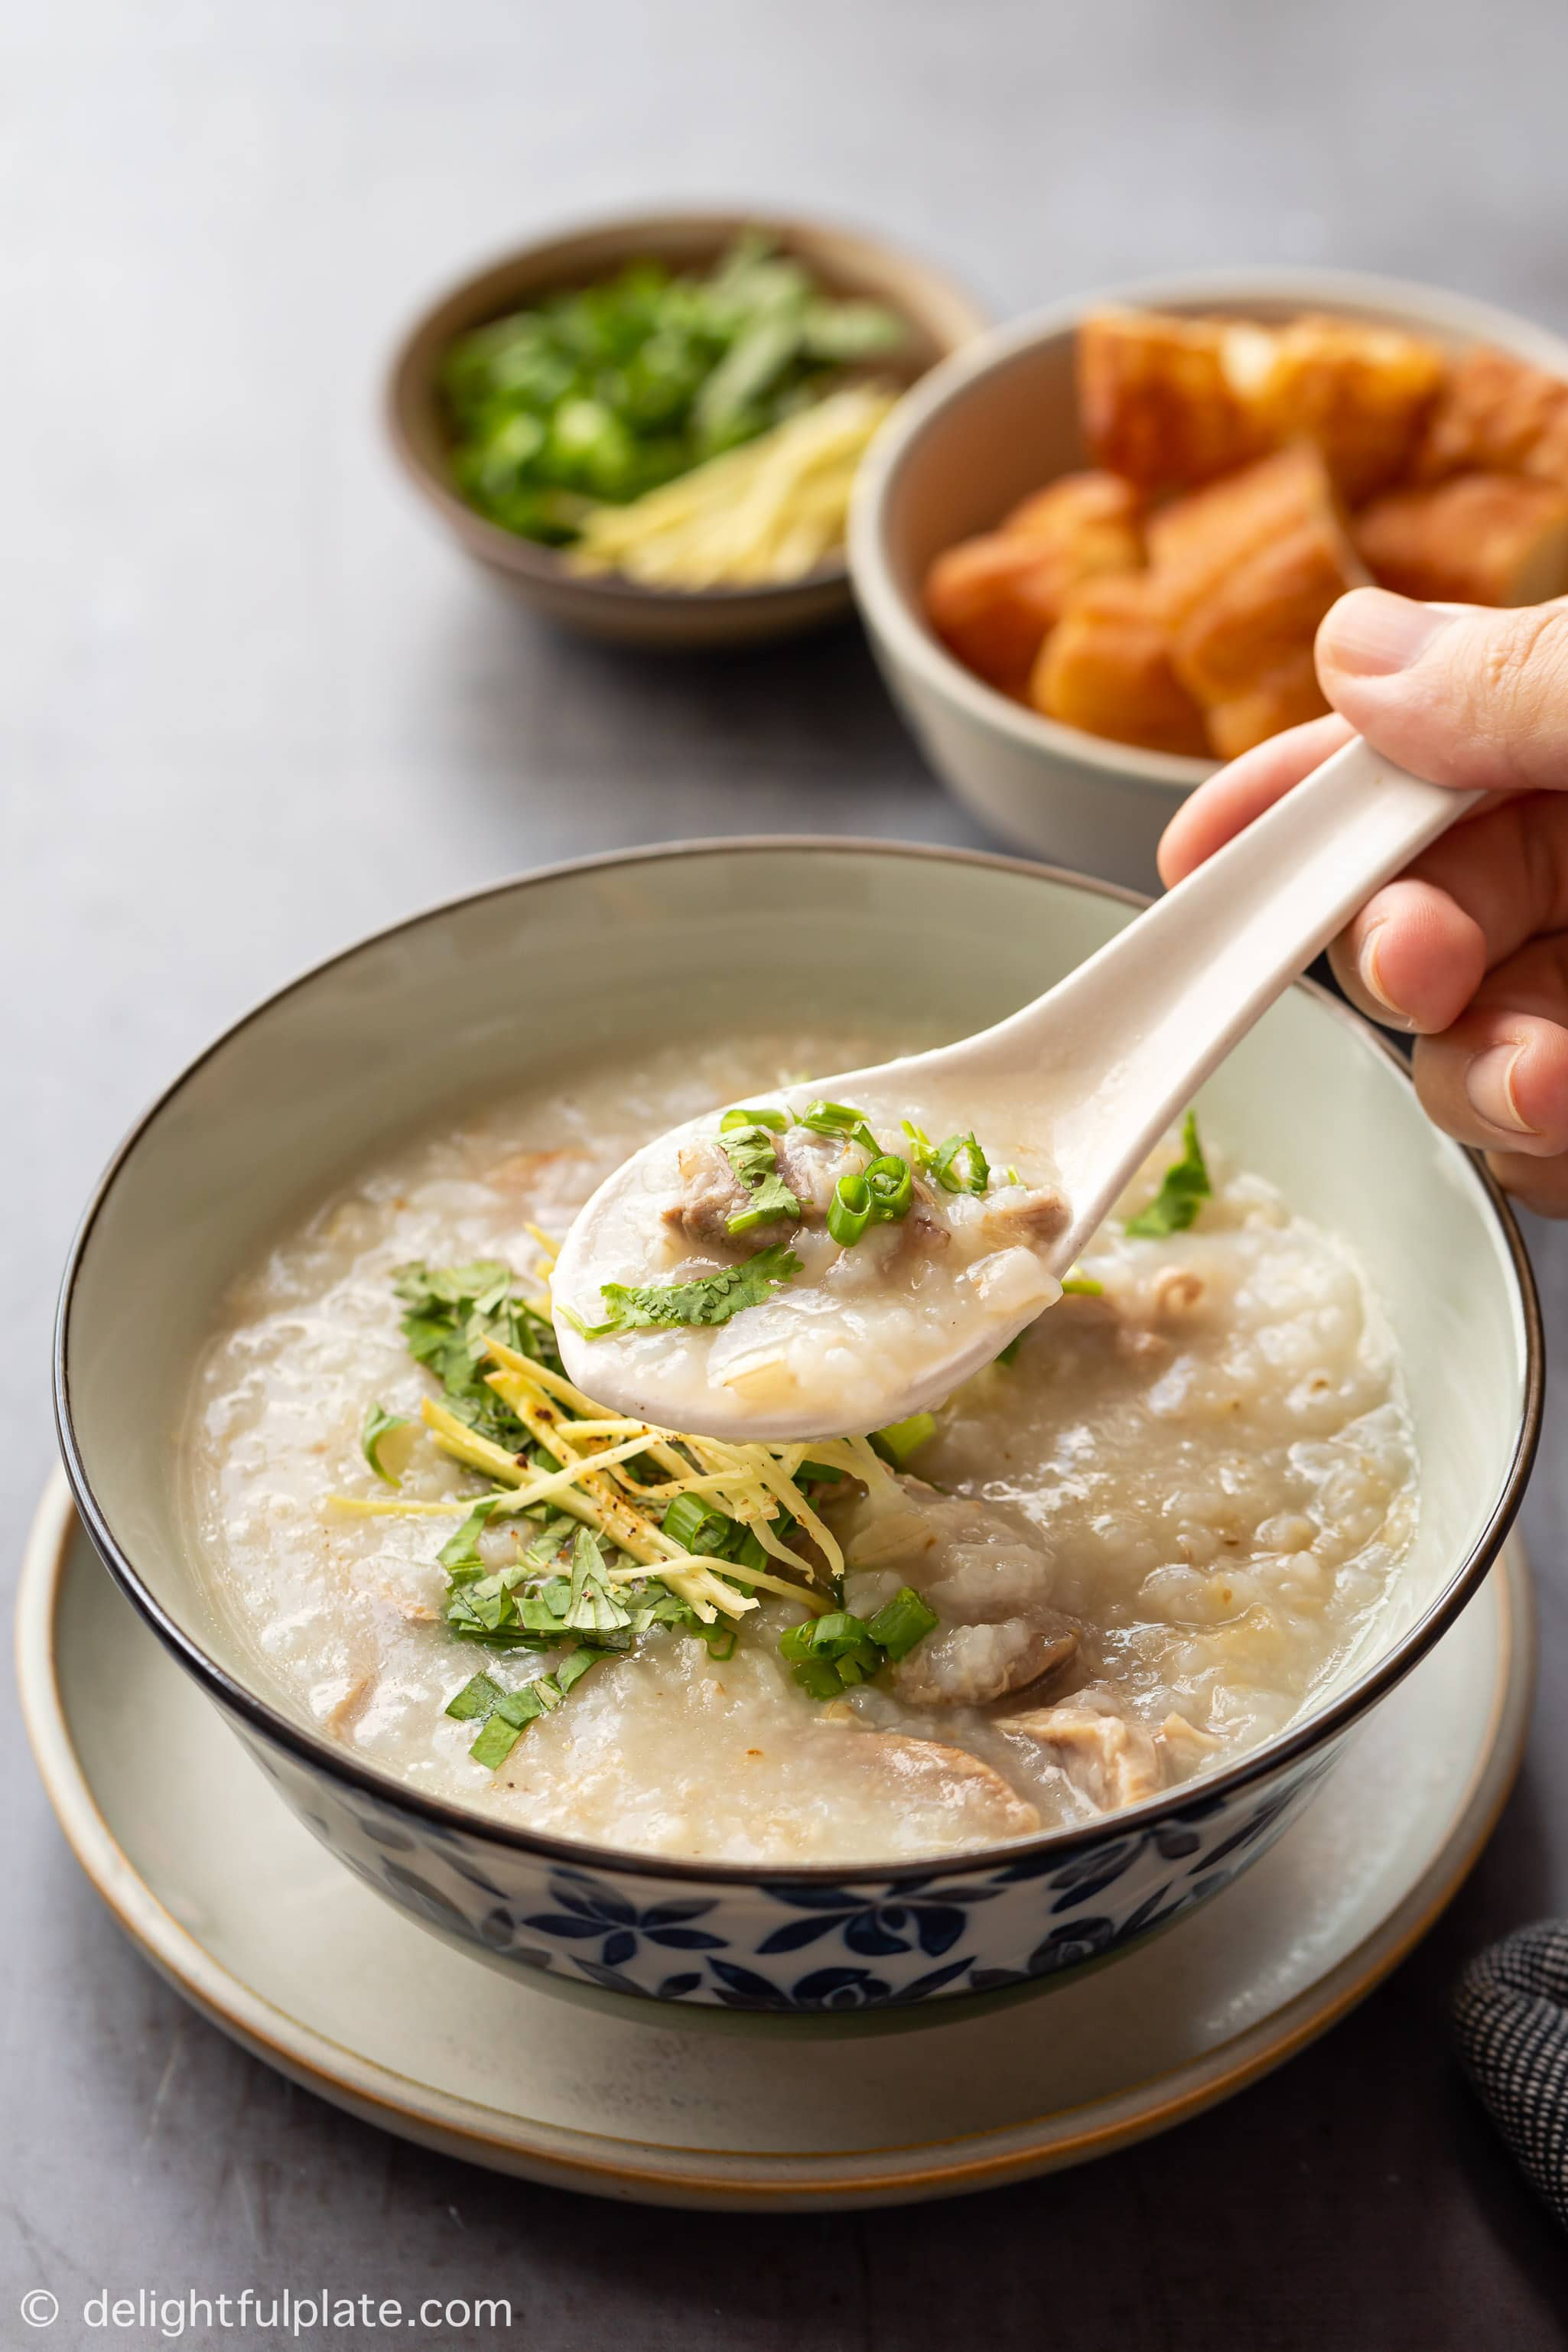 a bowl of duck congee, served with fried dough sticks (youtiao)